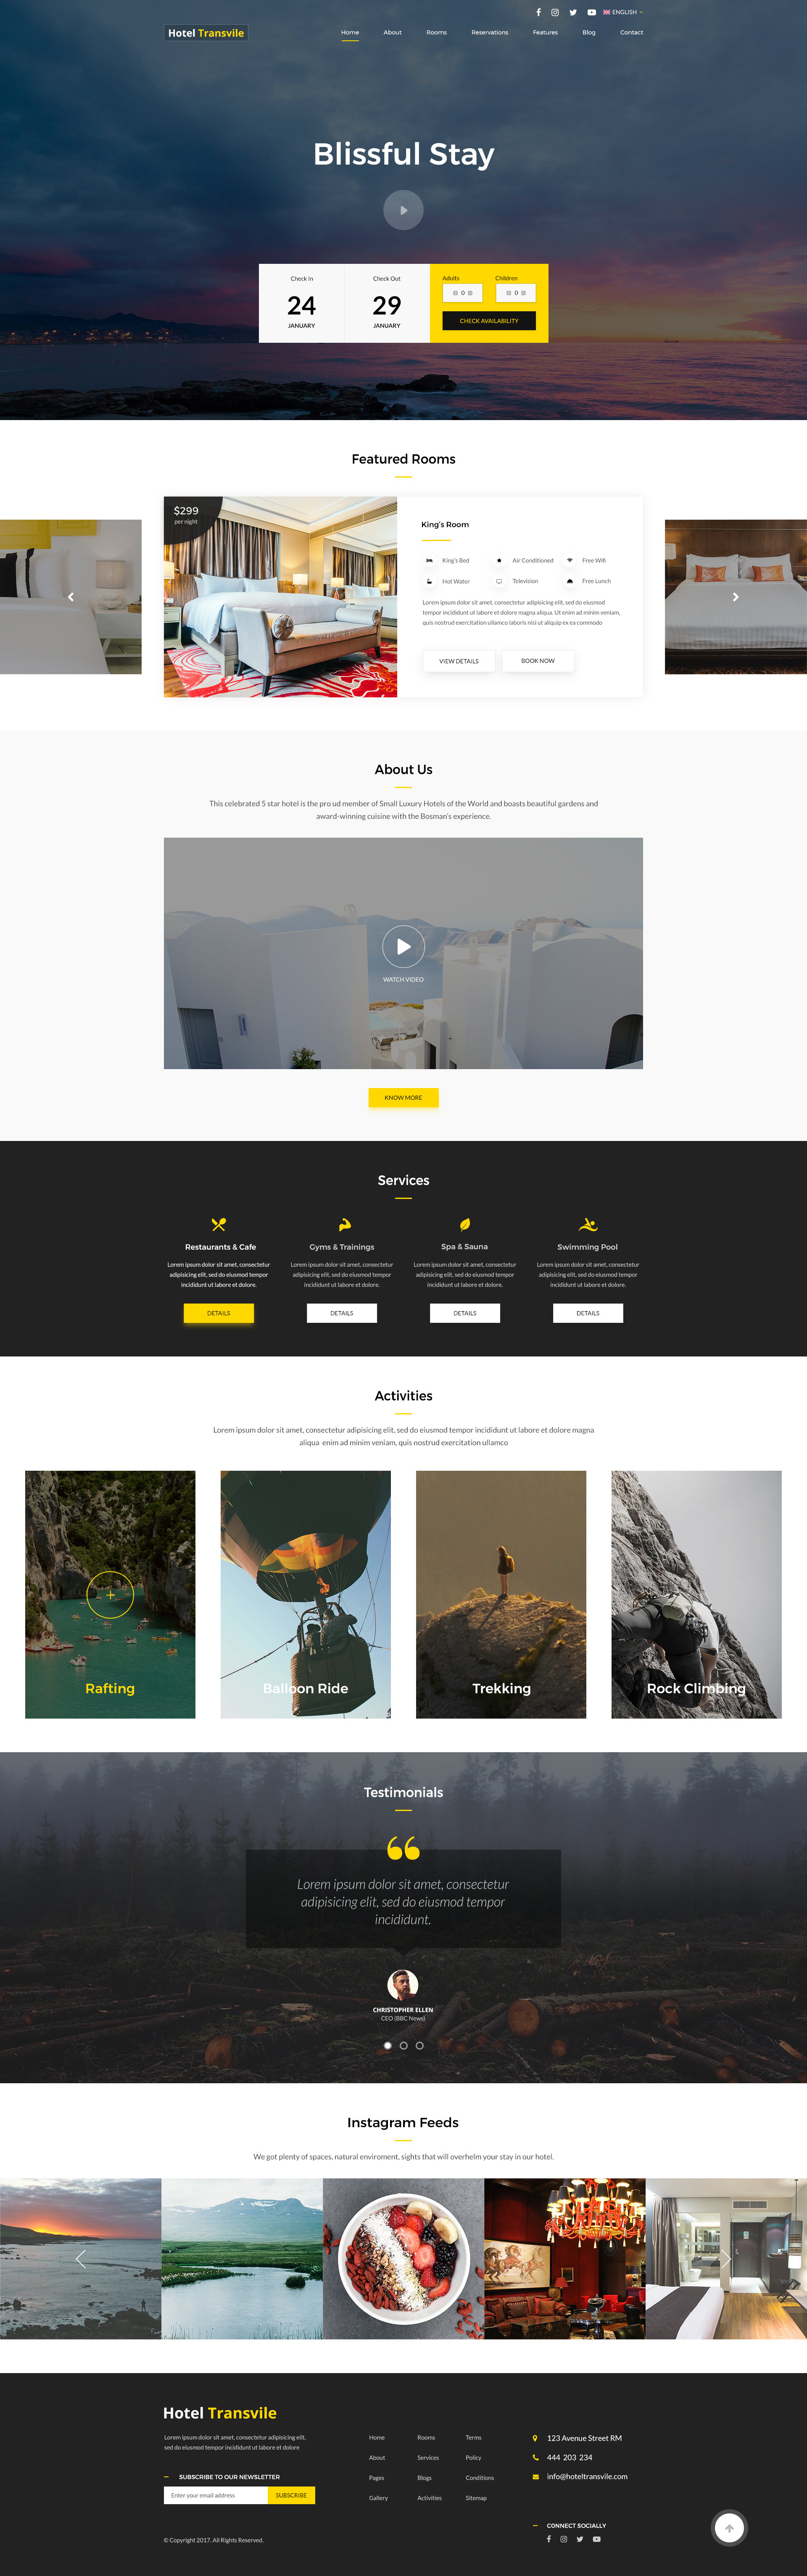 Transvile Hotel PSD Template by sandystha   ThemeForest